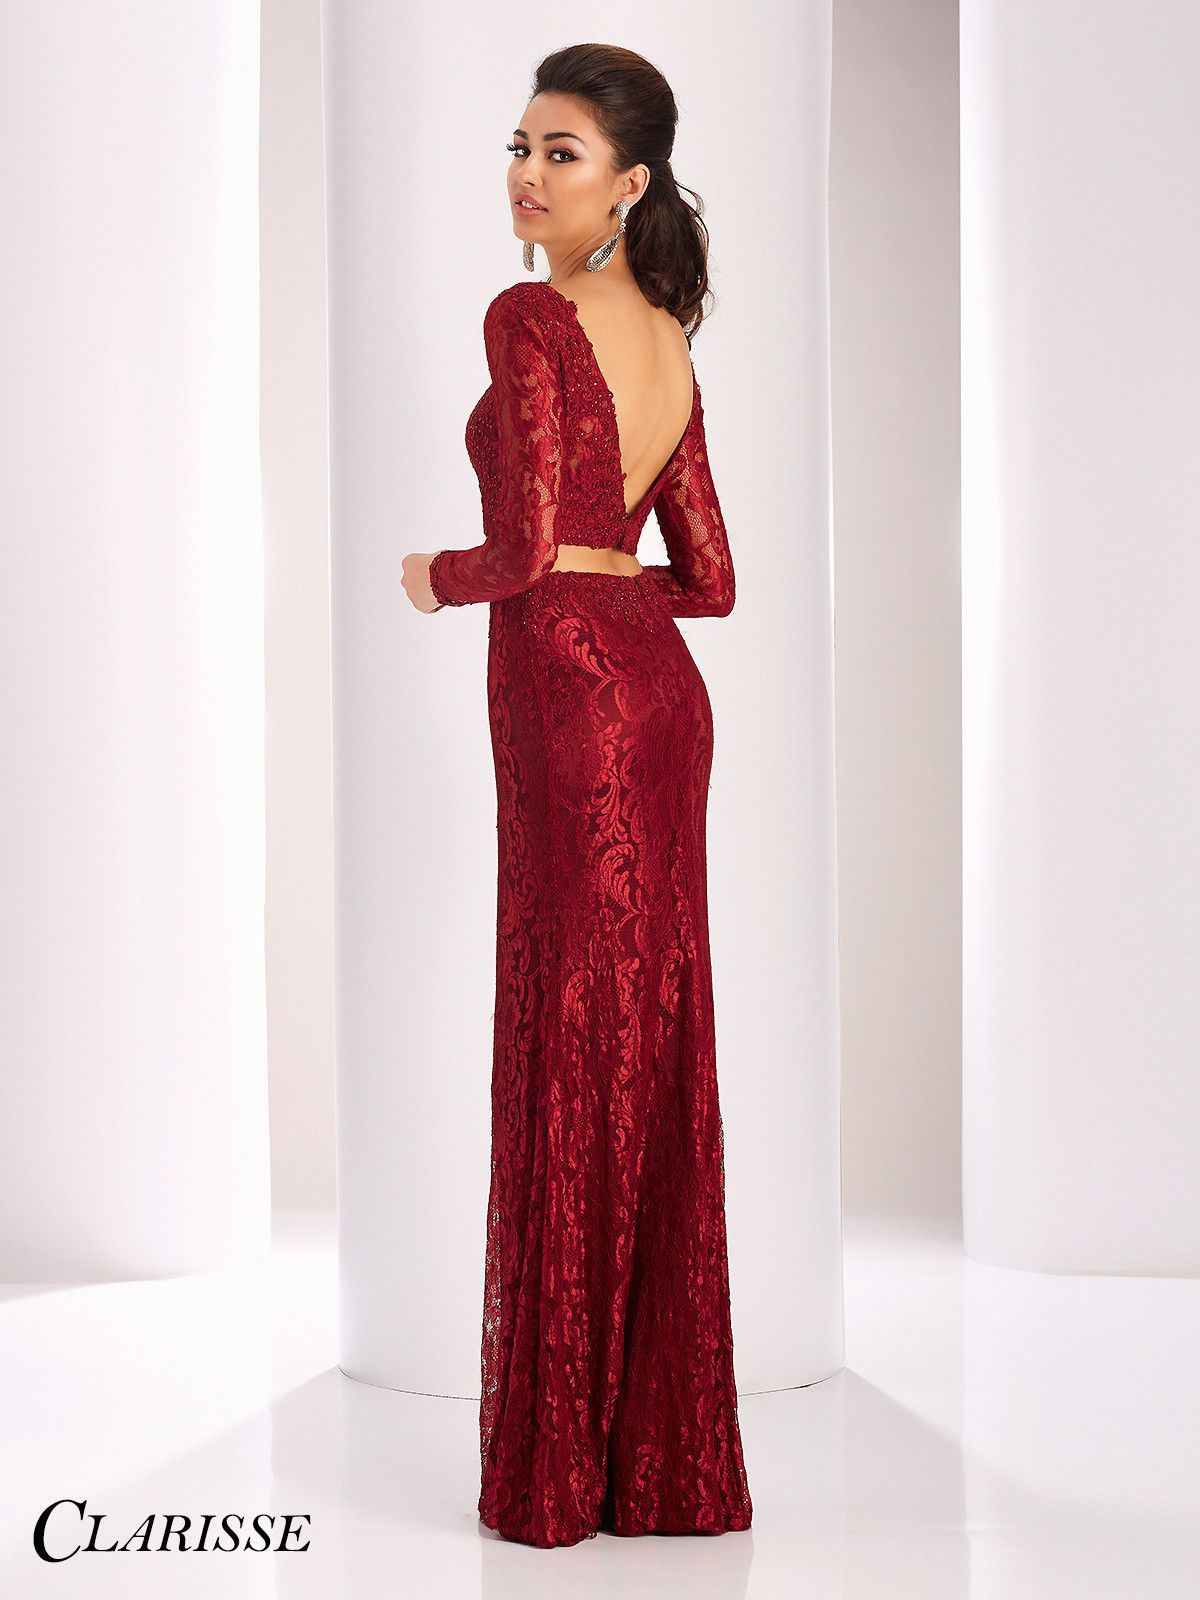 Clarisse Prom 3128 Ruby Long Sleeved Prom Dress